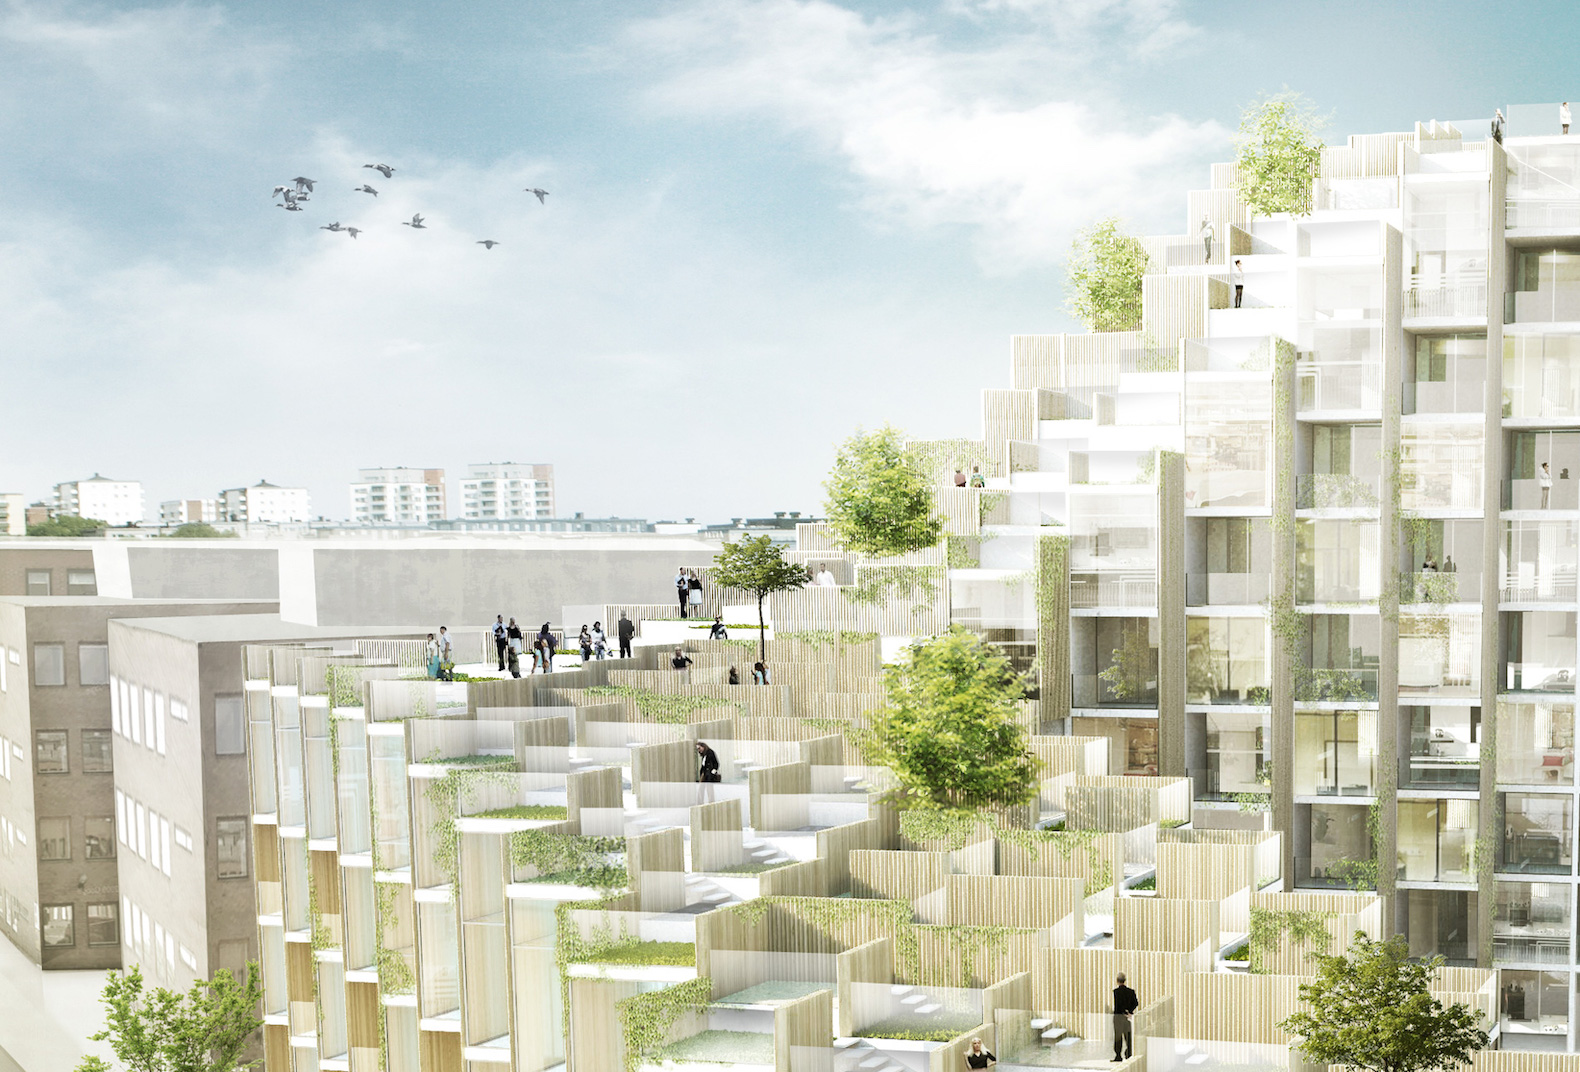 Terrace Building Design vo trong nghia architects | inhabitat - green design, innovation